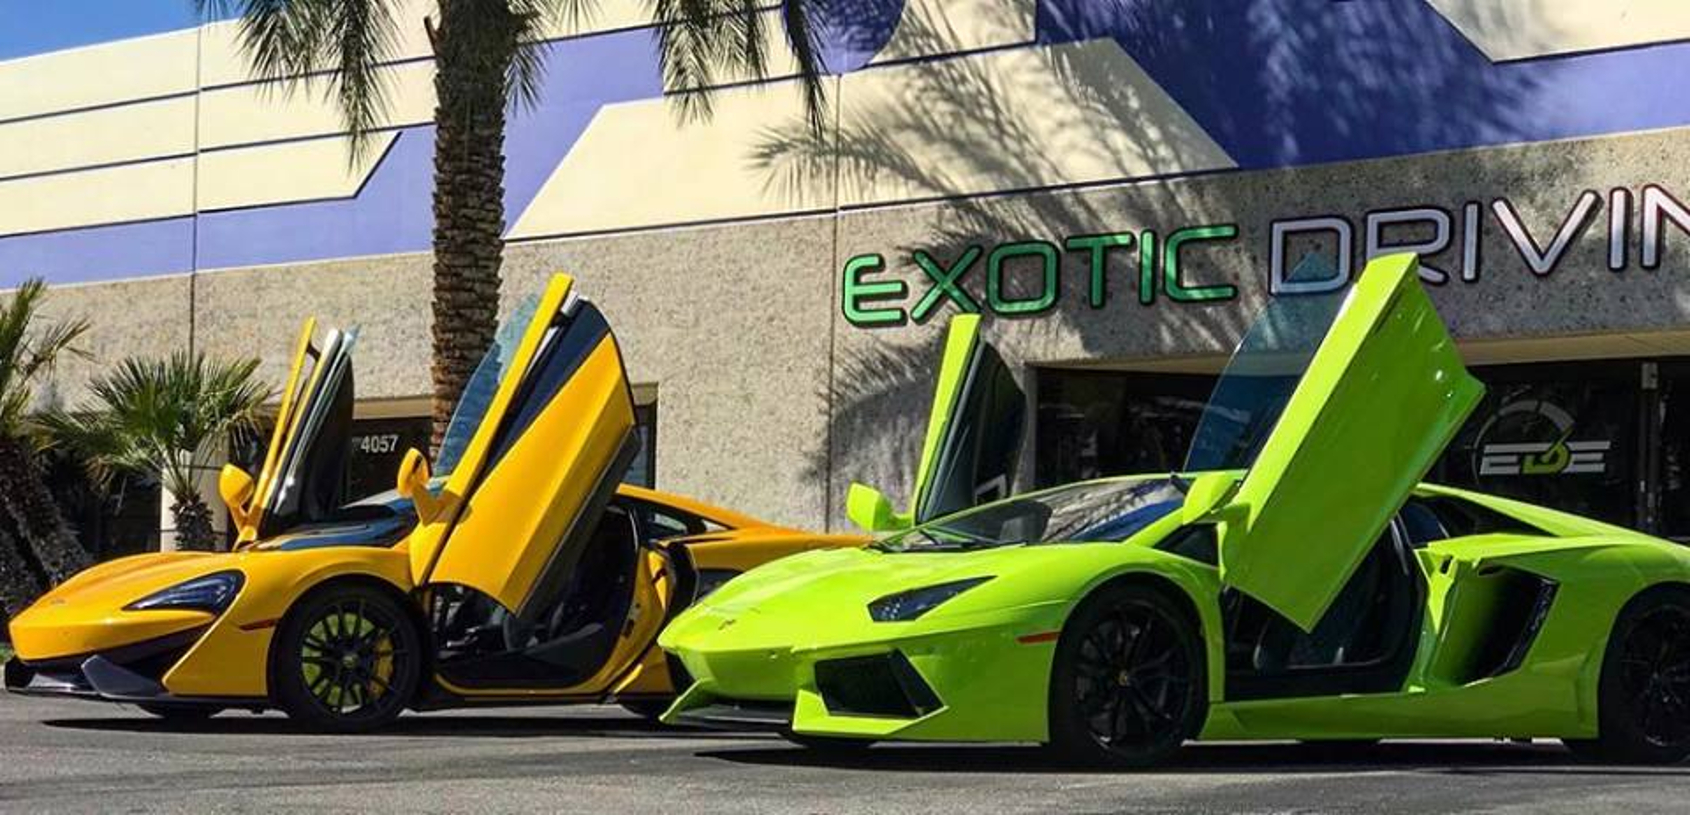 Helicopter & Muscle Car Rental 4